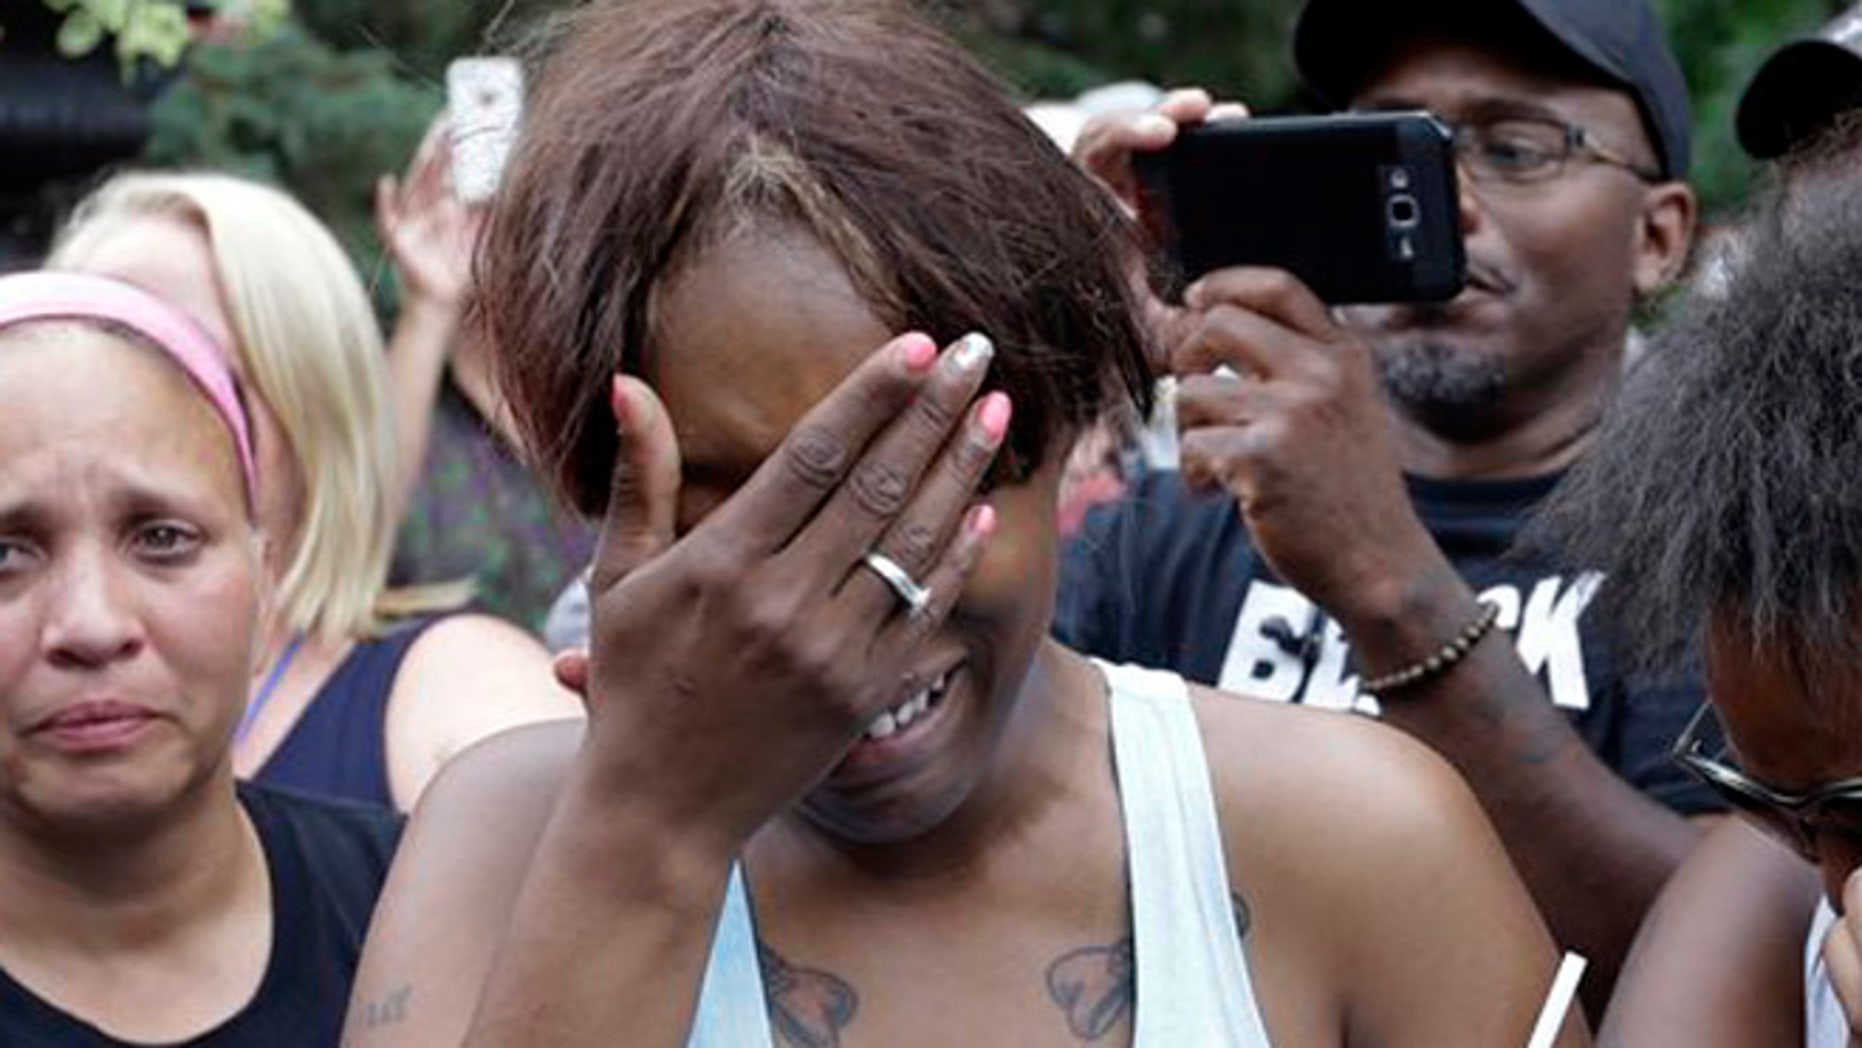 Diamond Reynolds, the girlfriend of Philando Castile of St. Paul, cries outside the governor's residence in St. Paul, Minn., on Thursday, July 7, 2016.  Castile was shot and killed after a traffic stop by police in Falcon Heights, Wednesday night. A video shot by Reynolds of the shooting  went viral.  (AP Photo/Jim Mone)